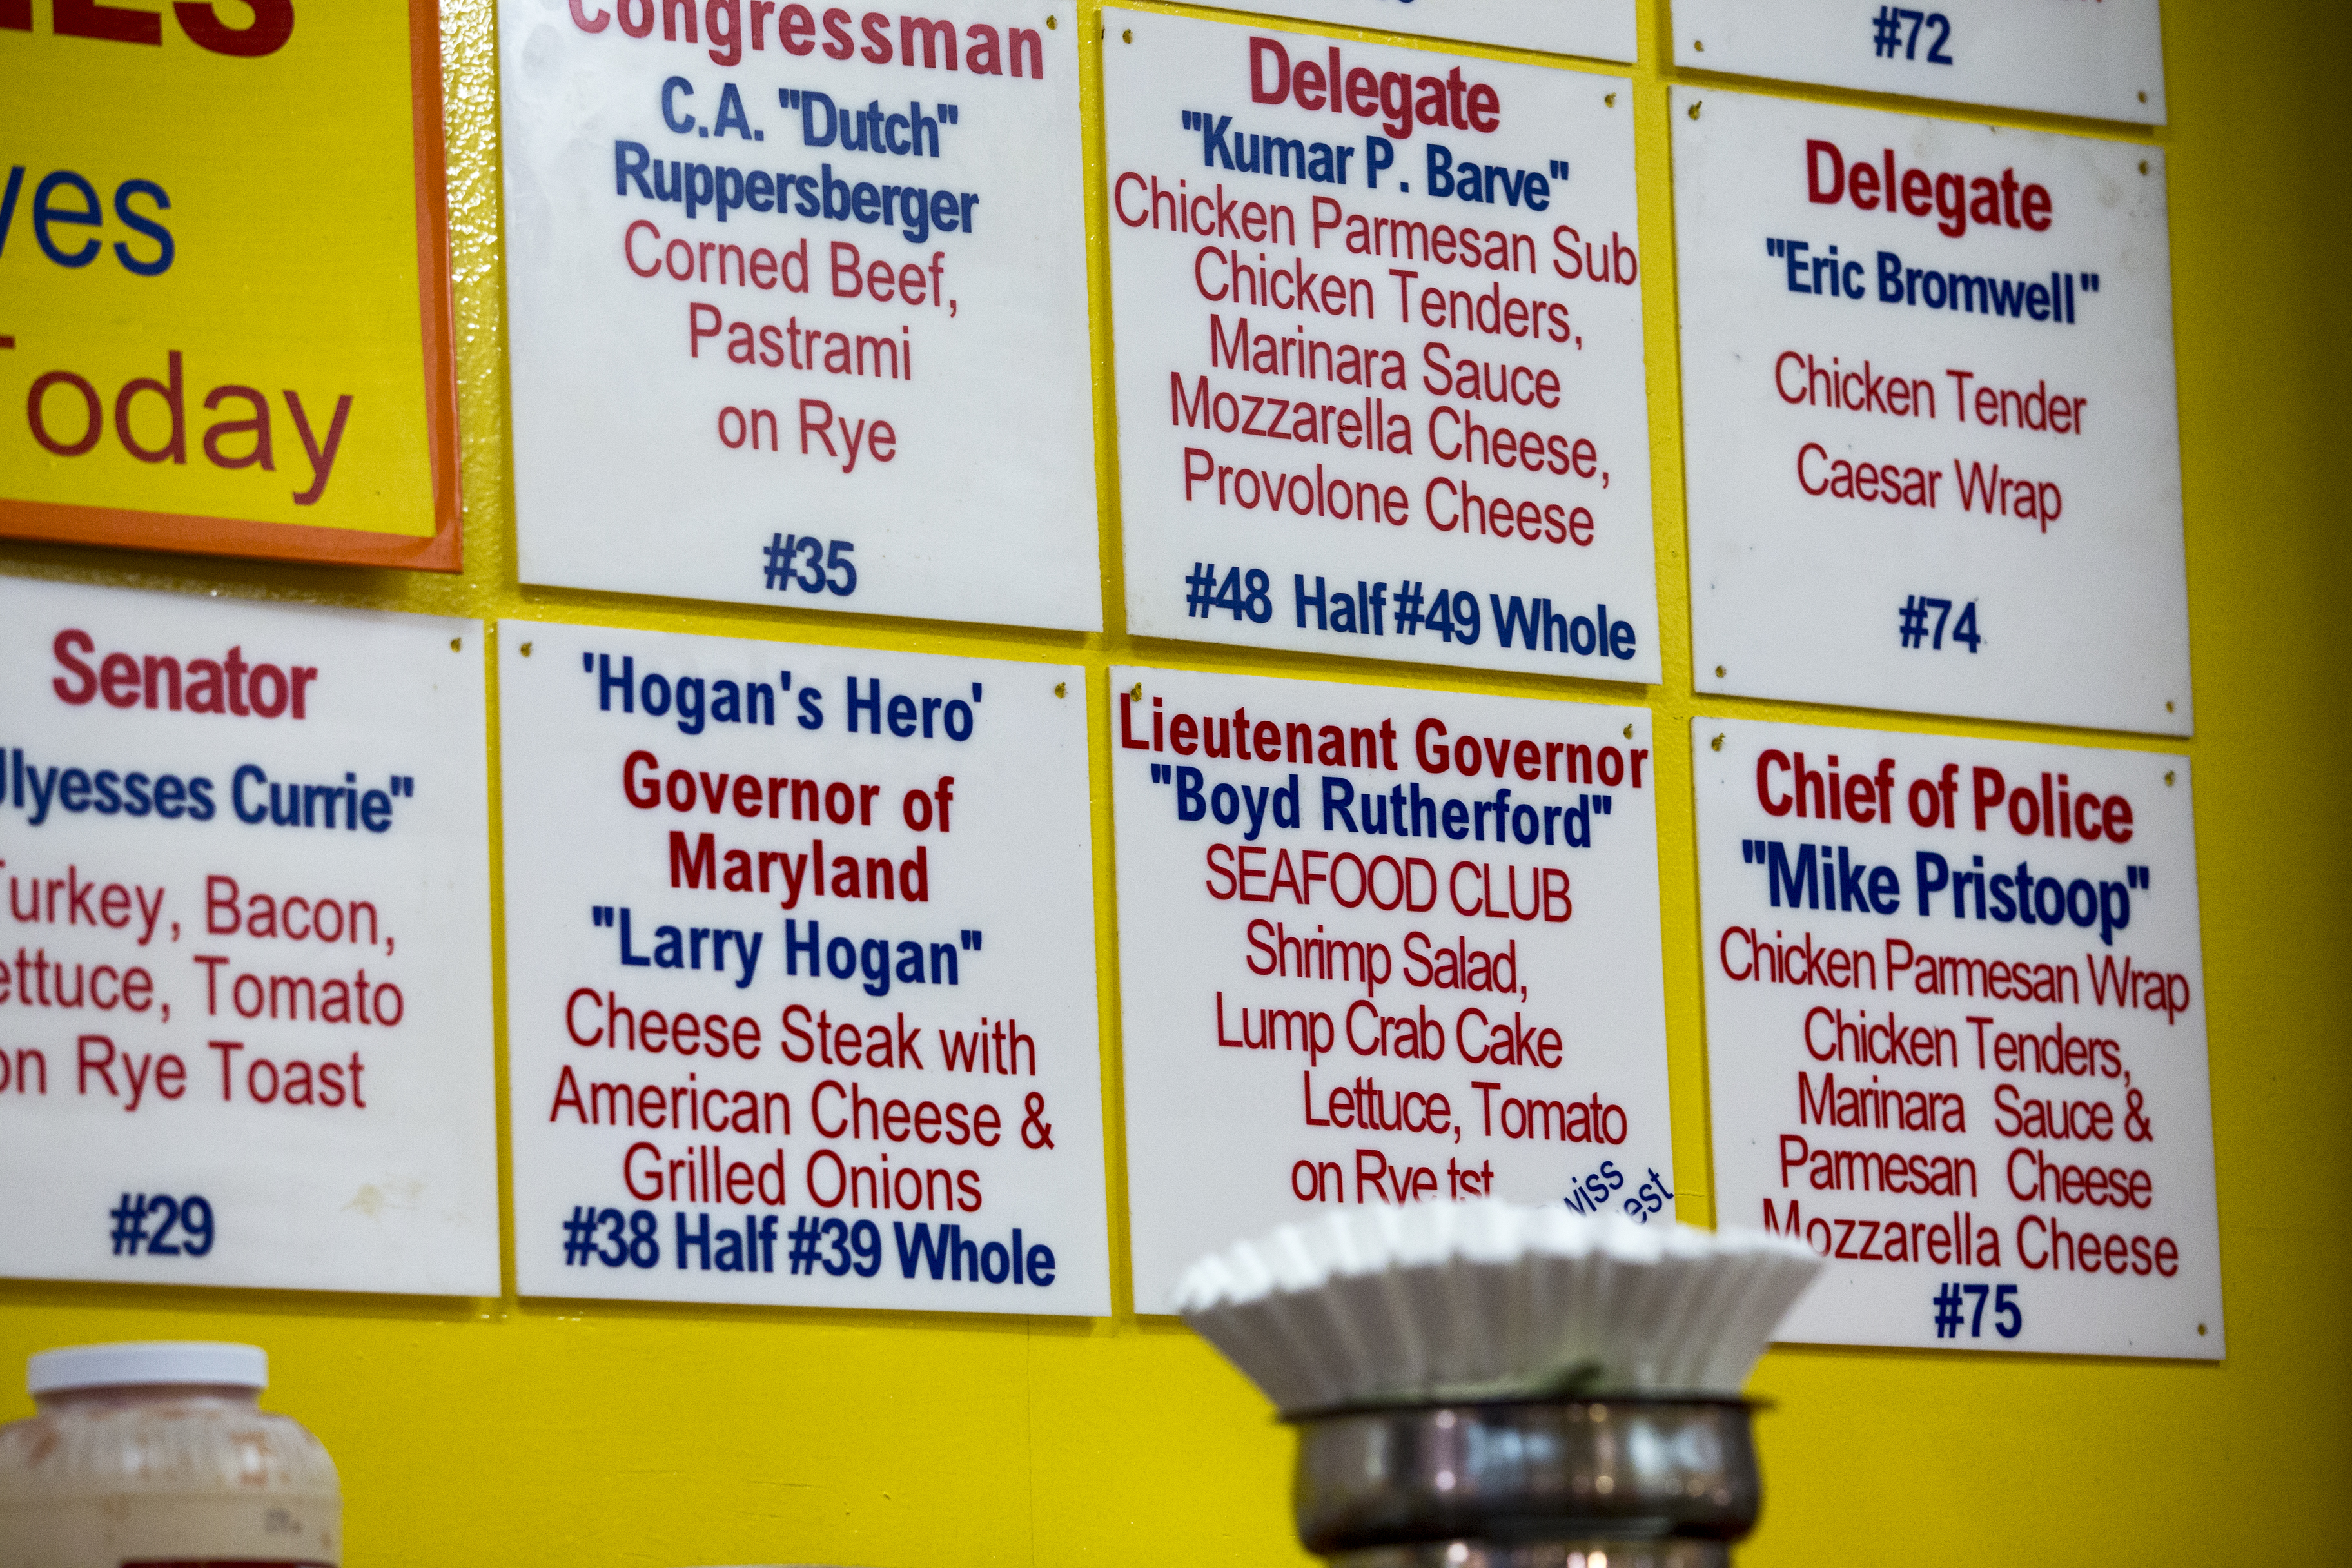 With new faces in state government come new sandwich names at Chick and Ruth's